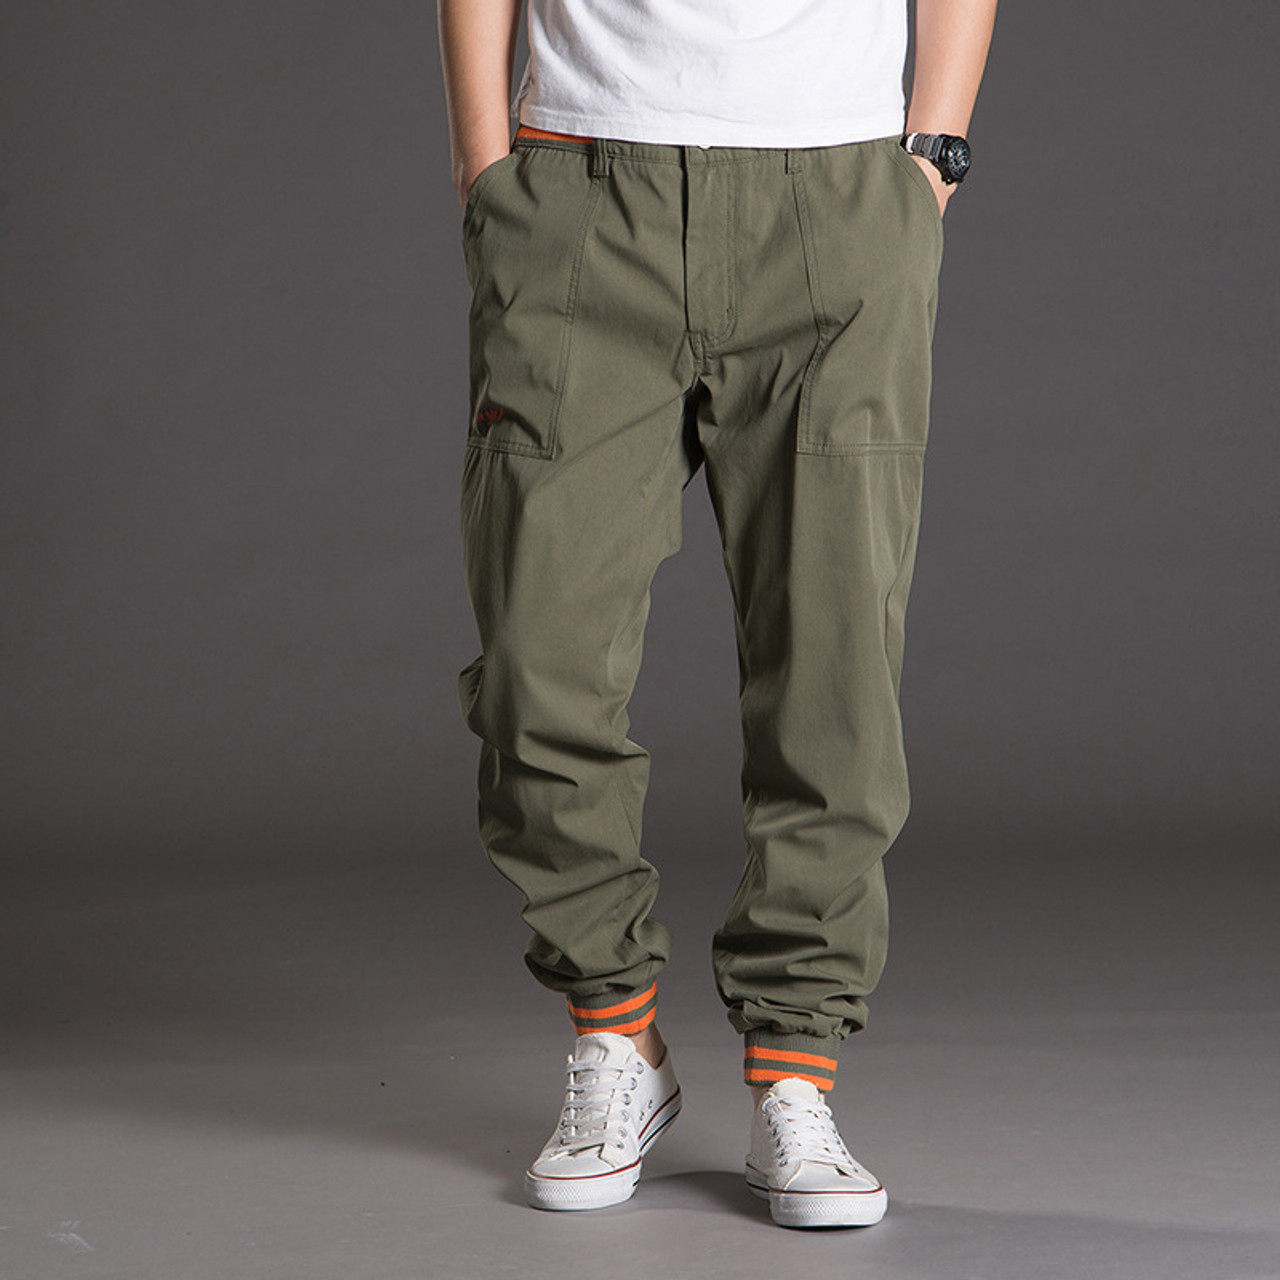 033e9ddd33eed Men Tactical Pants Camo Jogger Casual Cotton Trousers Multi Pocket Military  Style Army Camouflage Men s Cargo ...